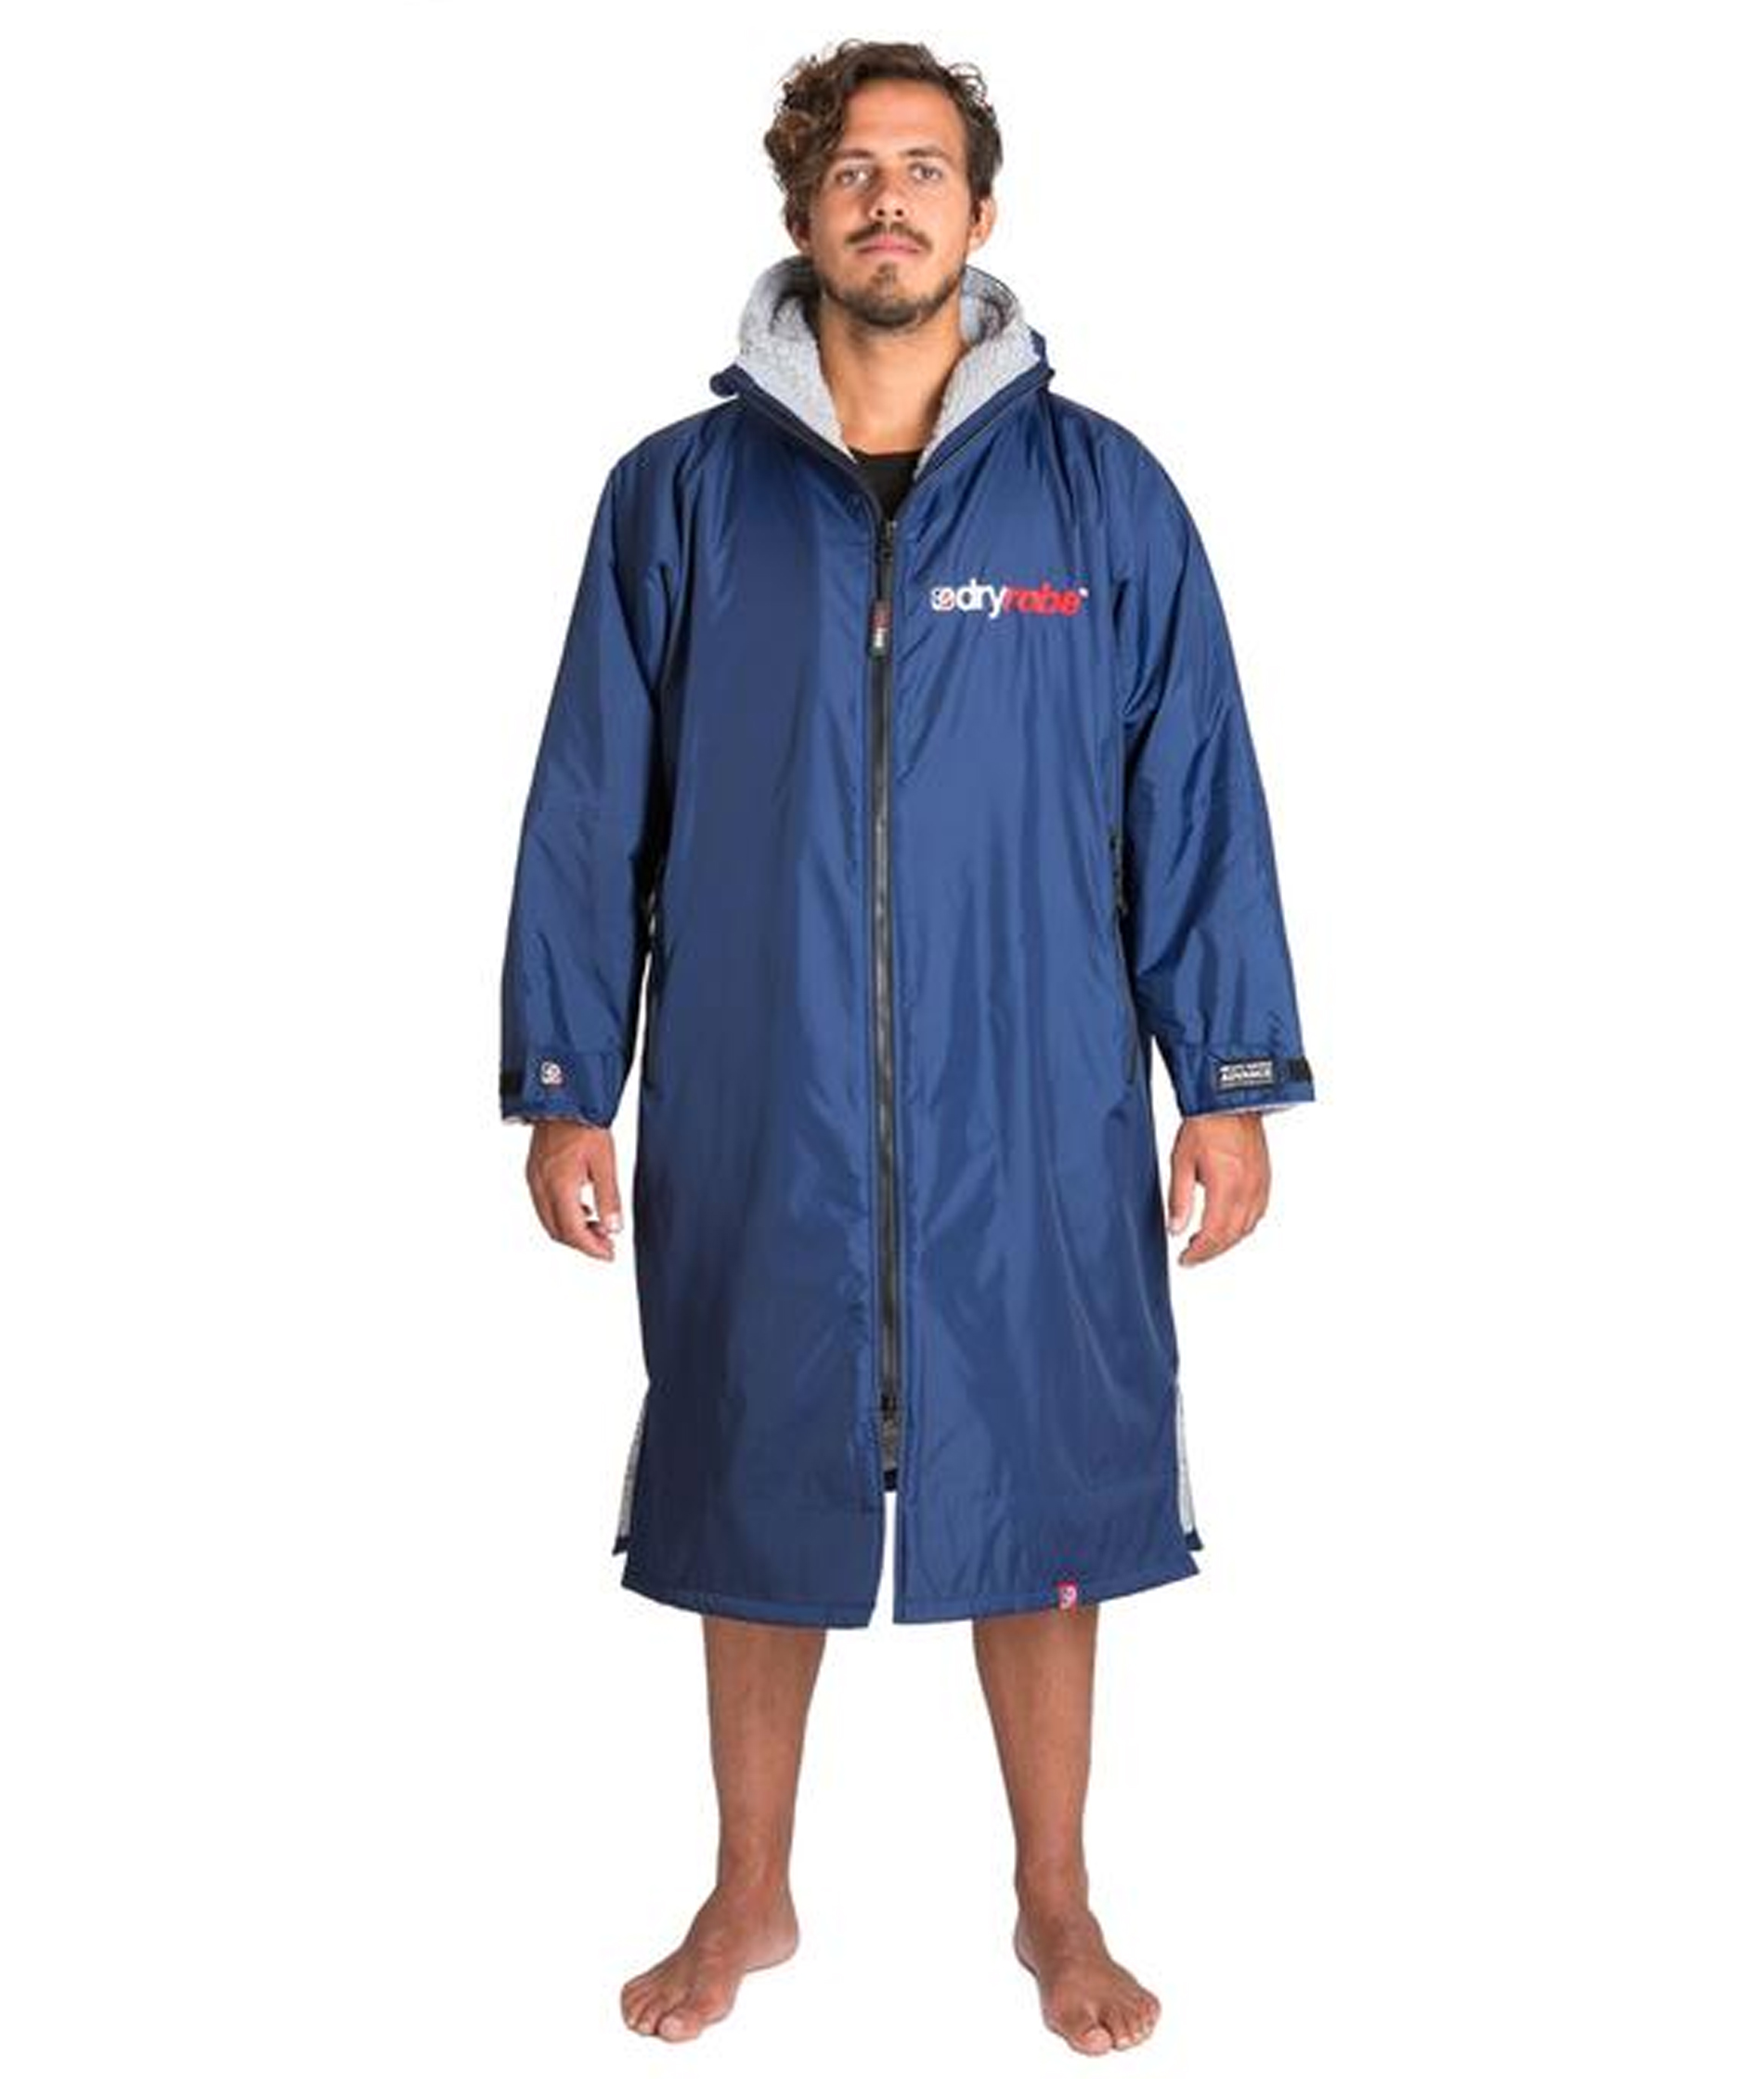 Dryrobe Advance Long Sleeve Navy/Grey - Medium